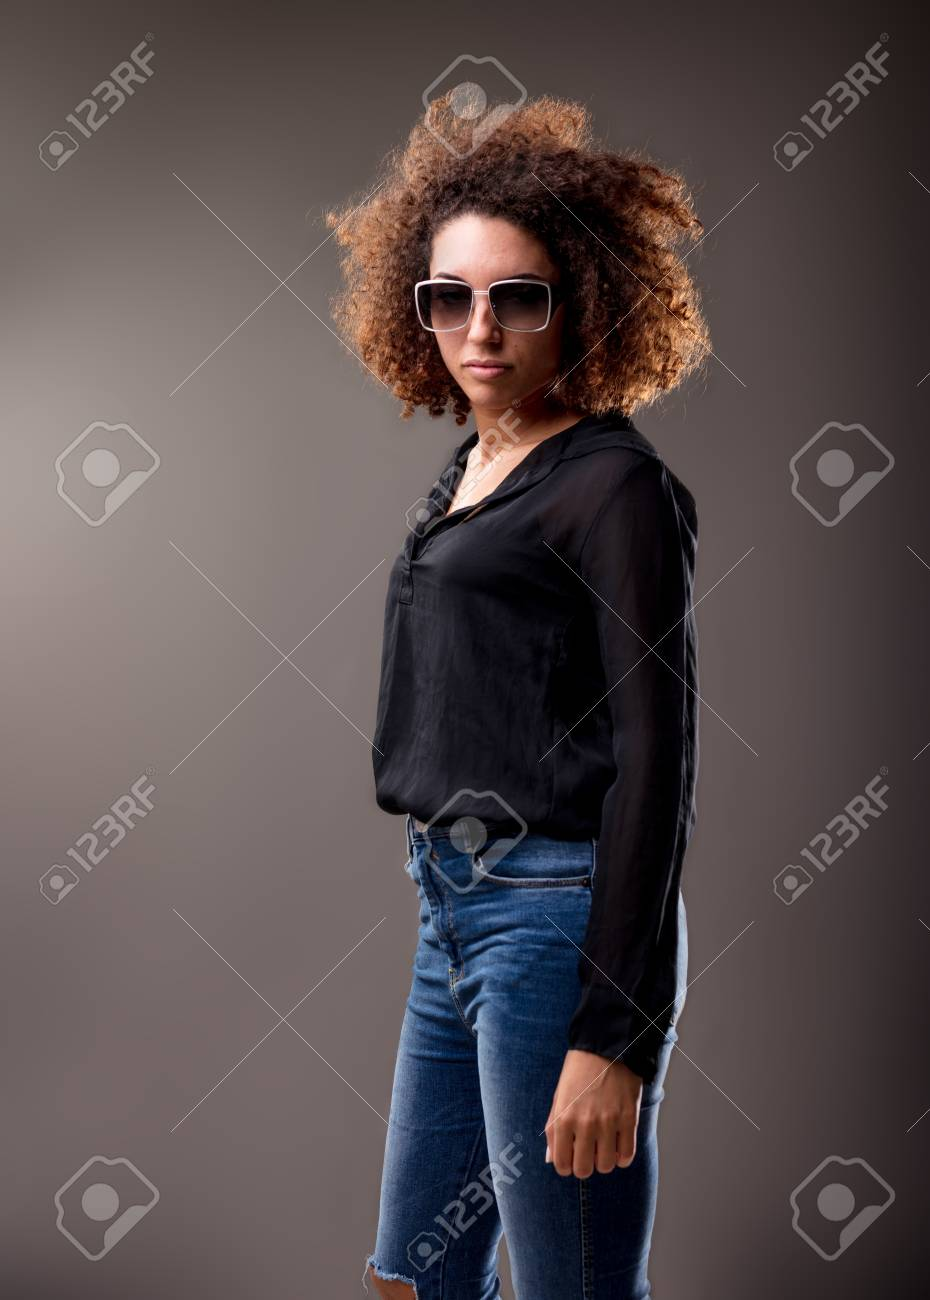 9a76367114c Stock Photo - woman with afro hair and sunglasses standing proud and watching  you